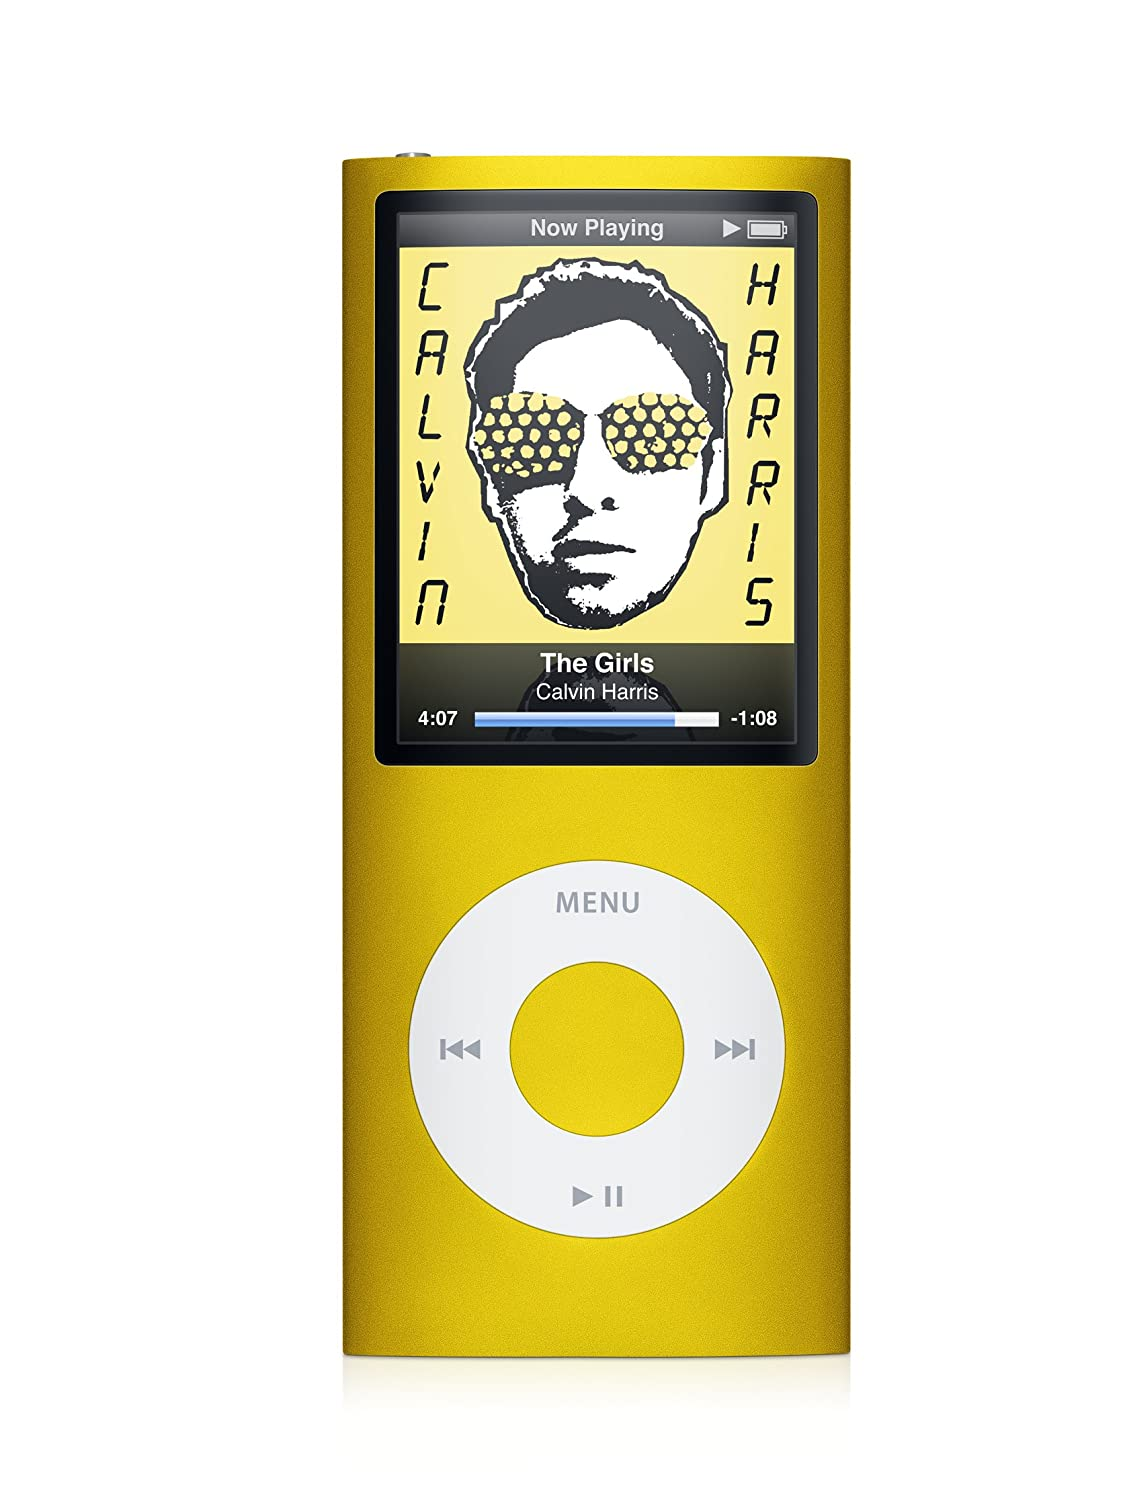 Amazon.com: Apple iPod nano 8 GB Yellow (4th Generation) (Discontinued by  Manufacturer): Home Audio & Theater